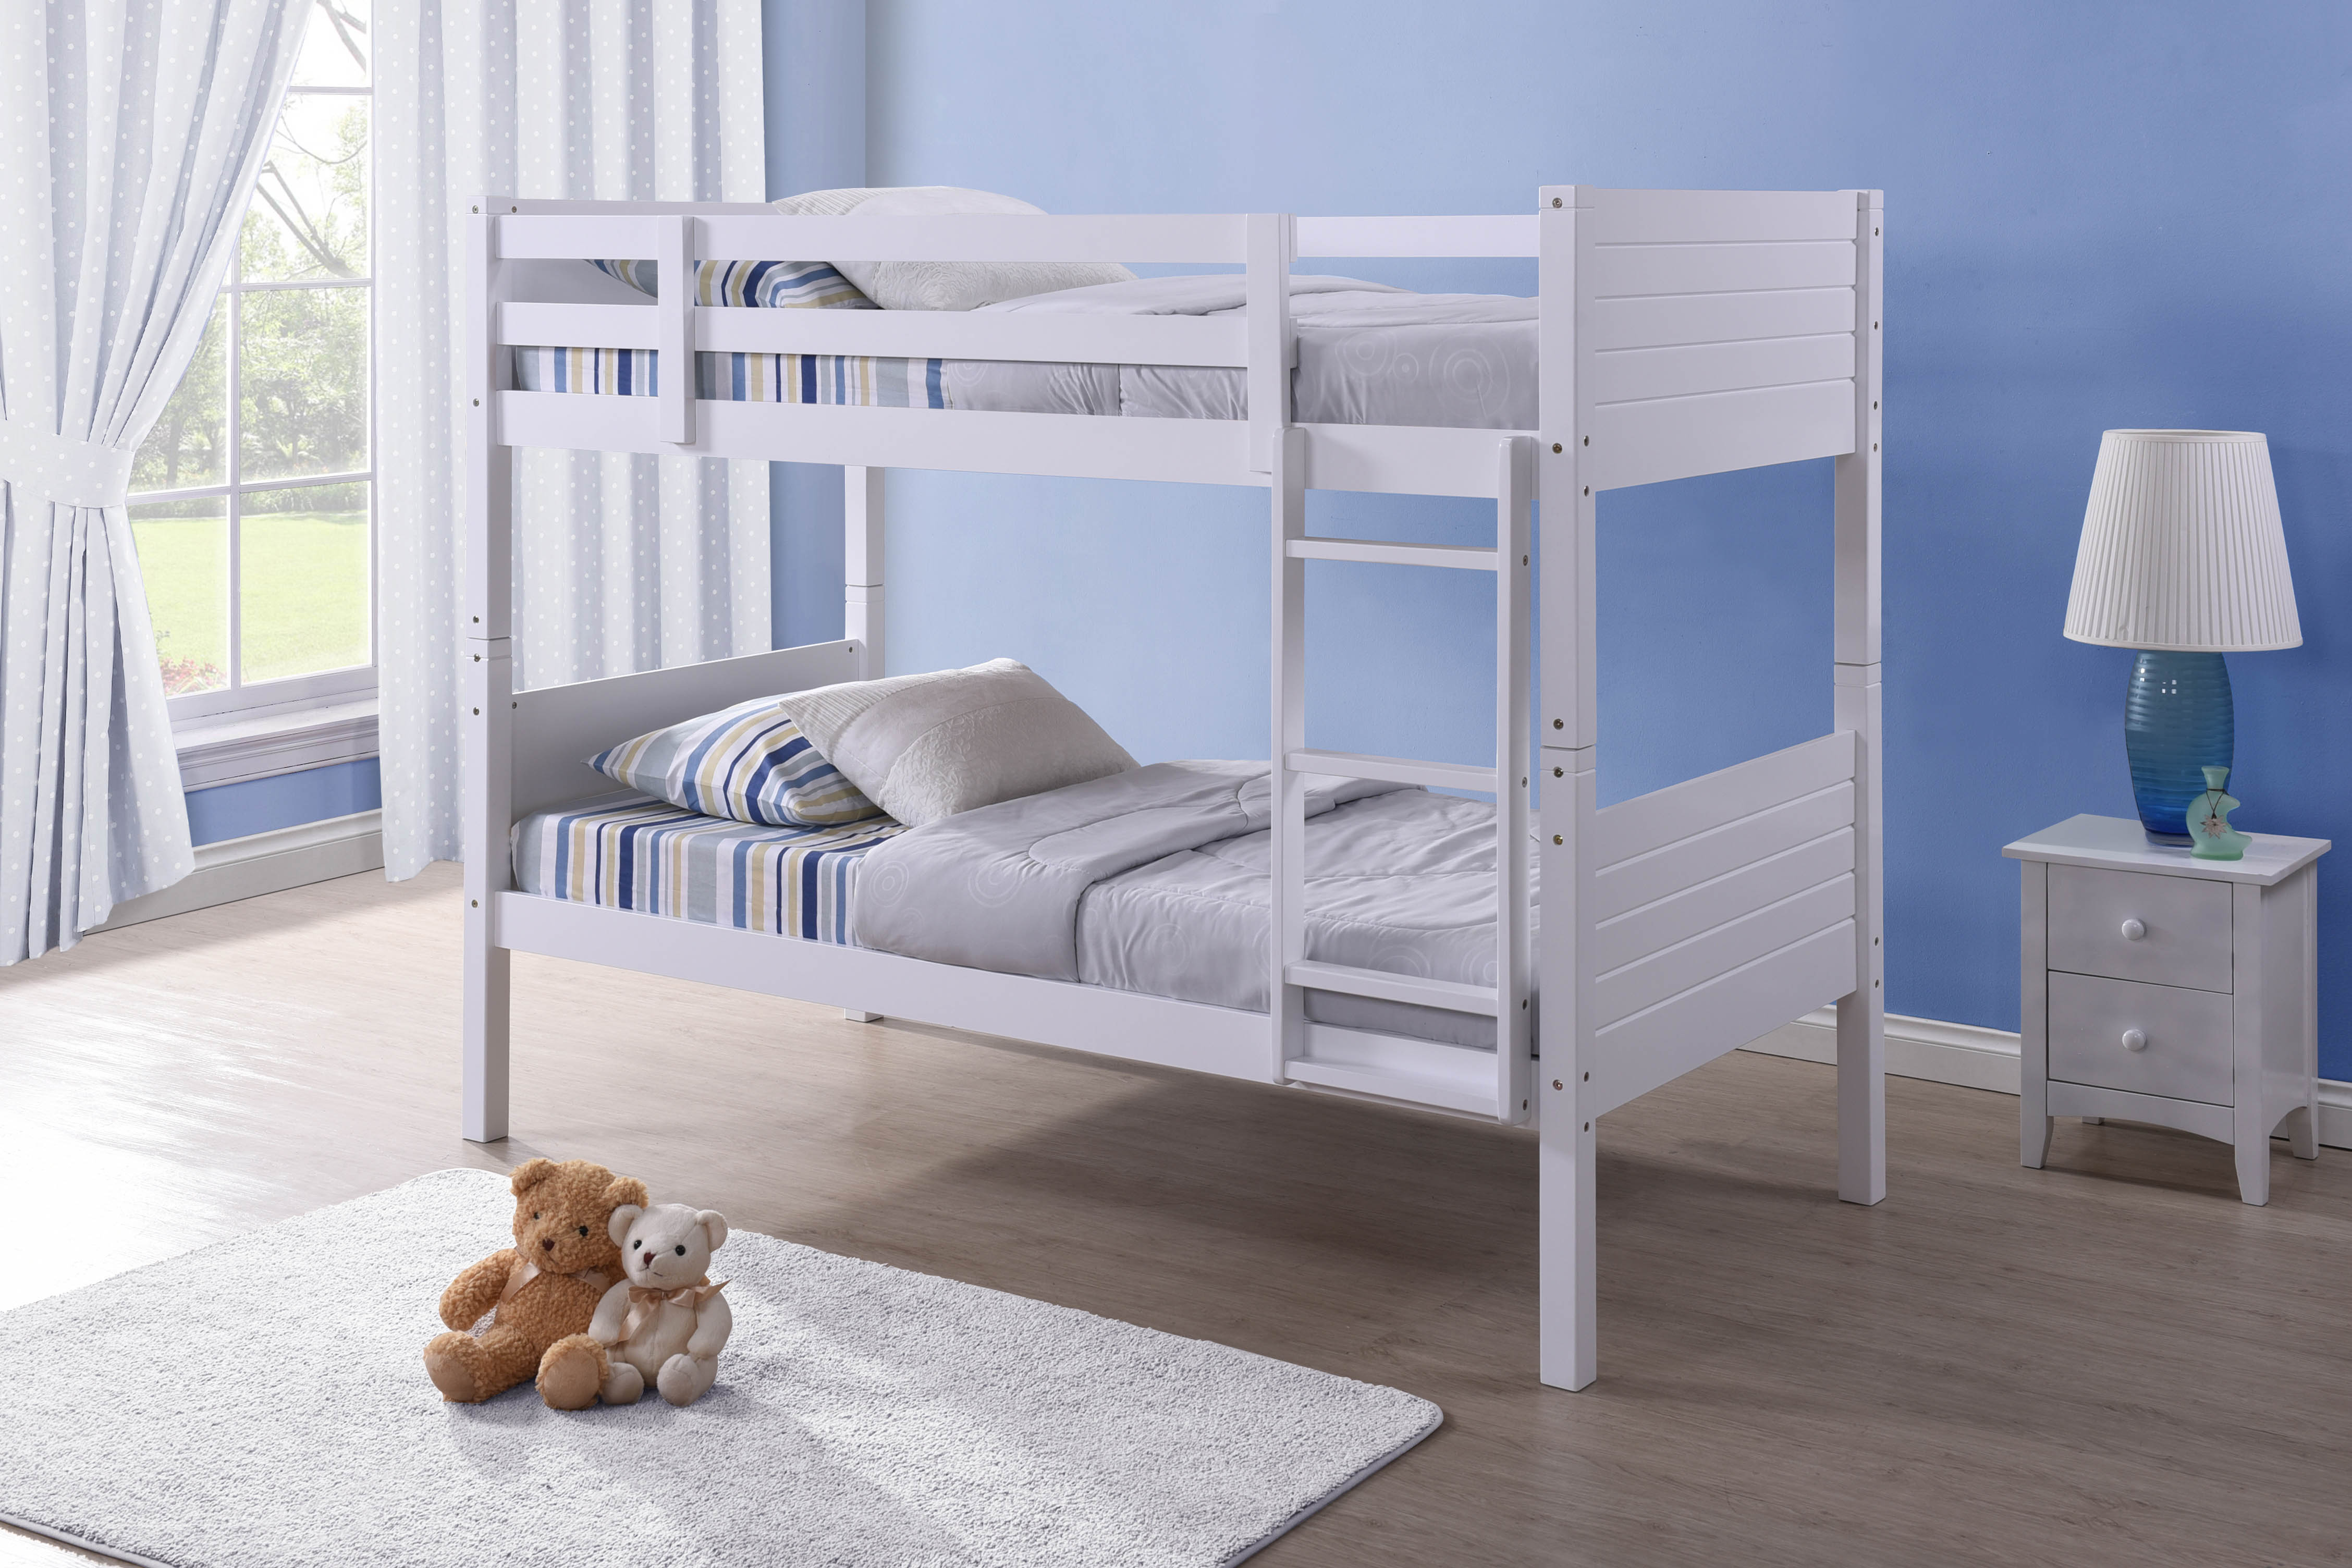 3FT BEDFORD BUNK BED IN WHITE